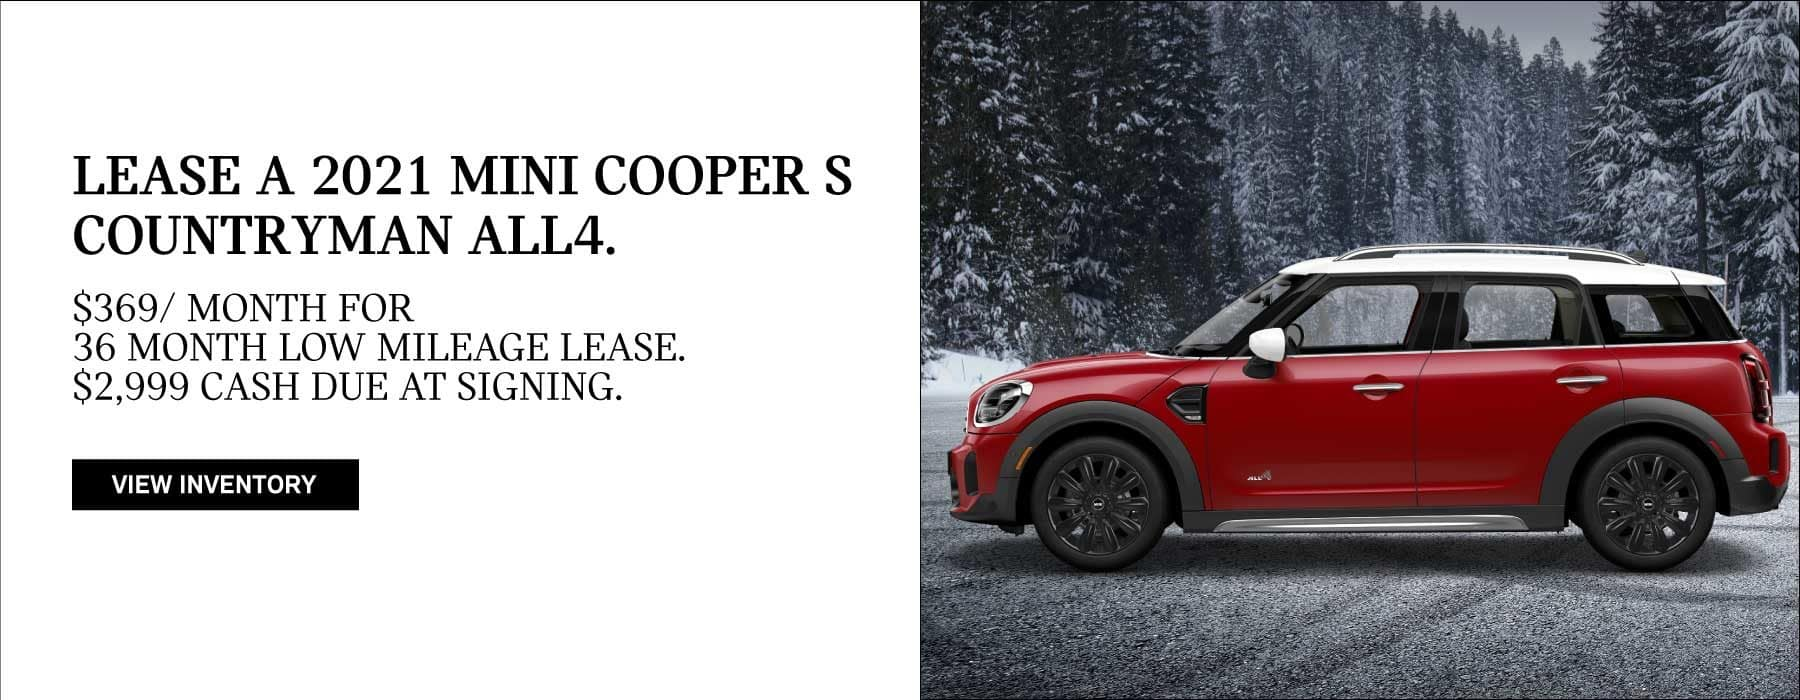 Lease a 2021 MINI Cooper S Countryman ALL4 for $369 for 36 month low mileage lease with $2,999 due at signing.